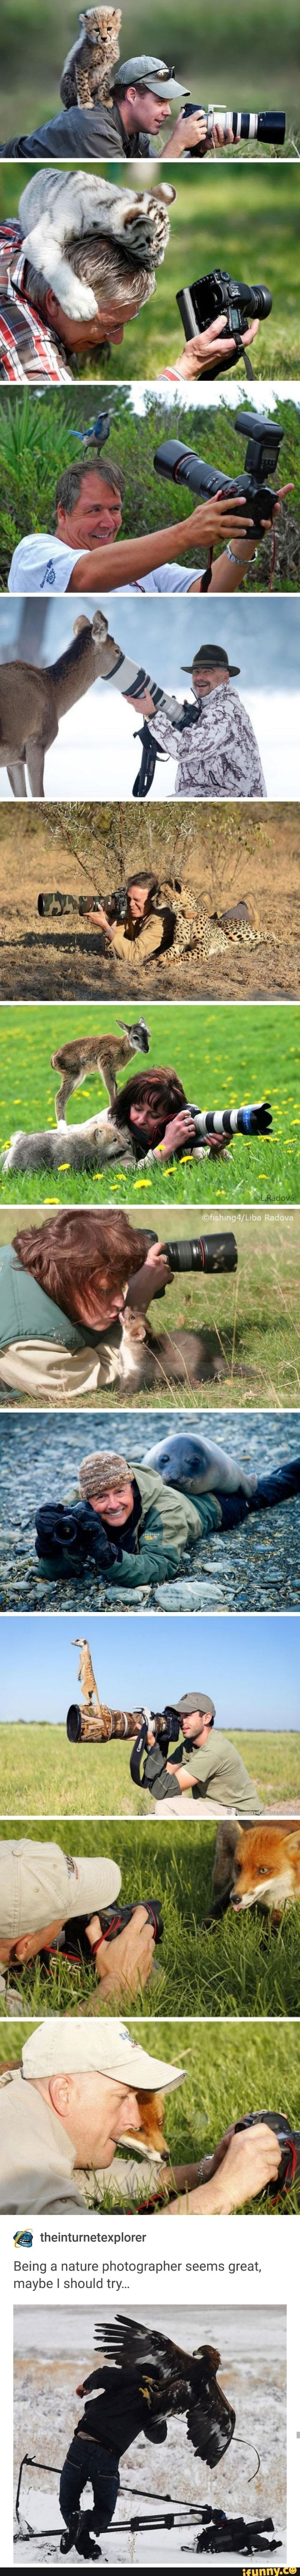 best aww images on pinterest animal babies cutest animals and